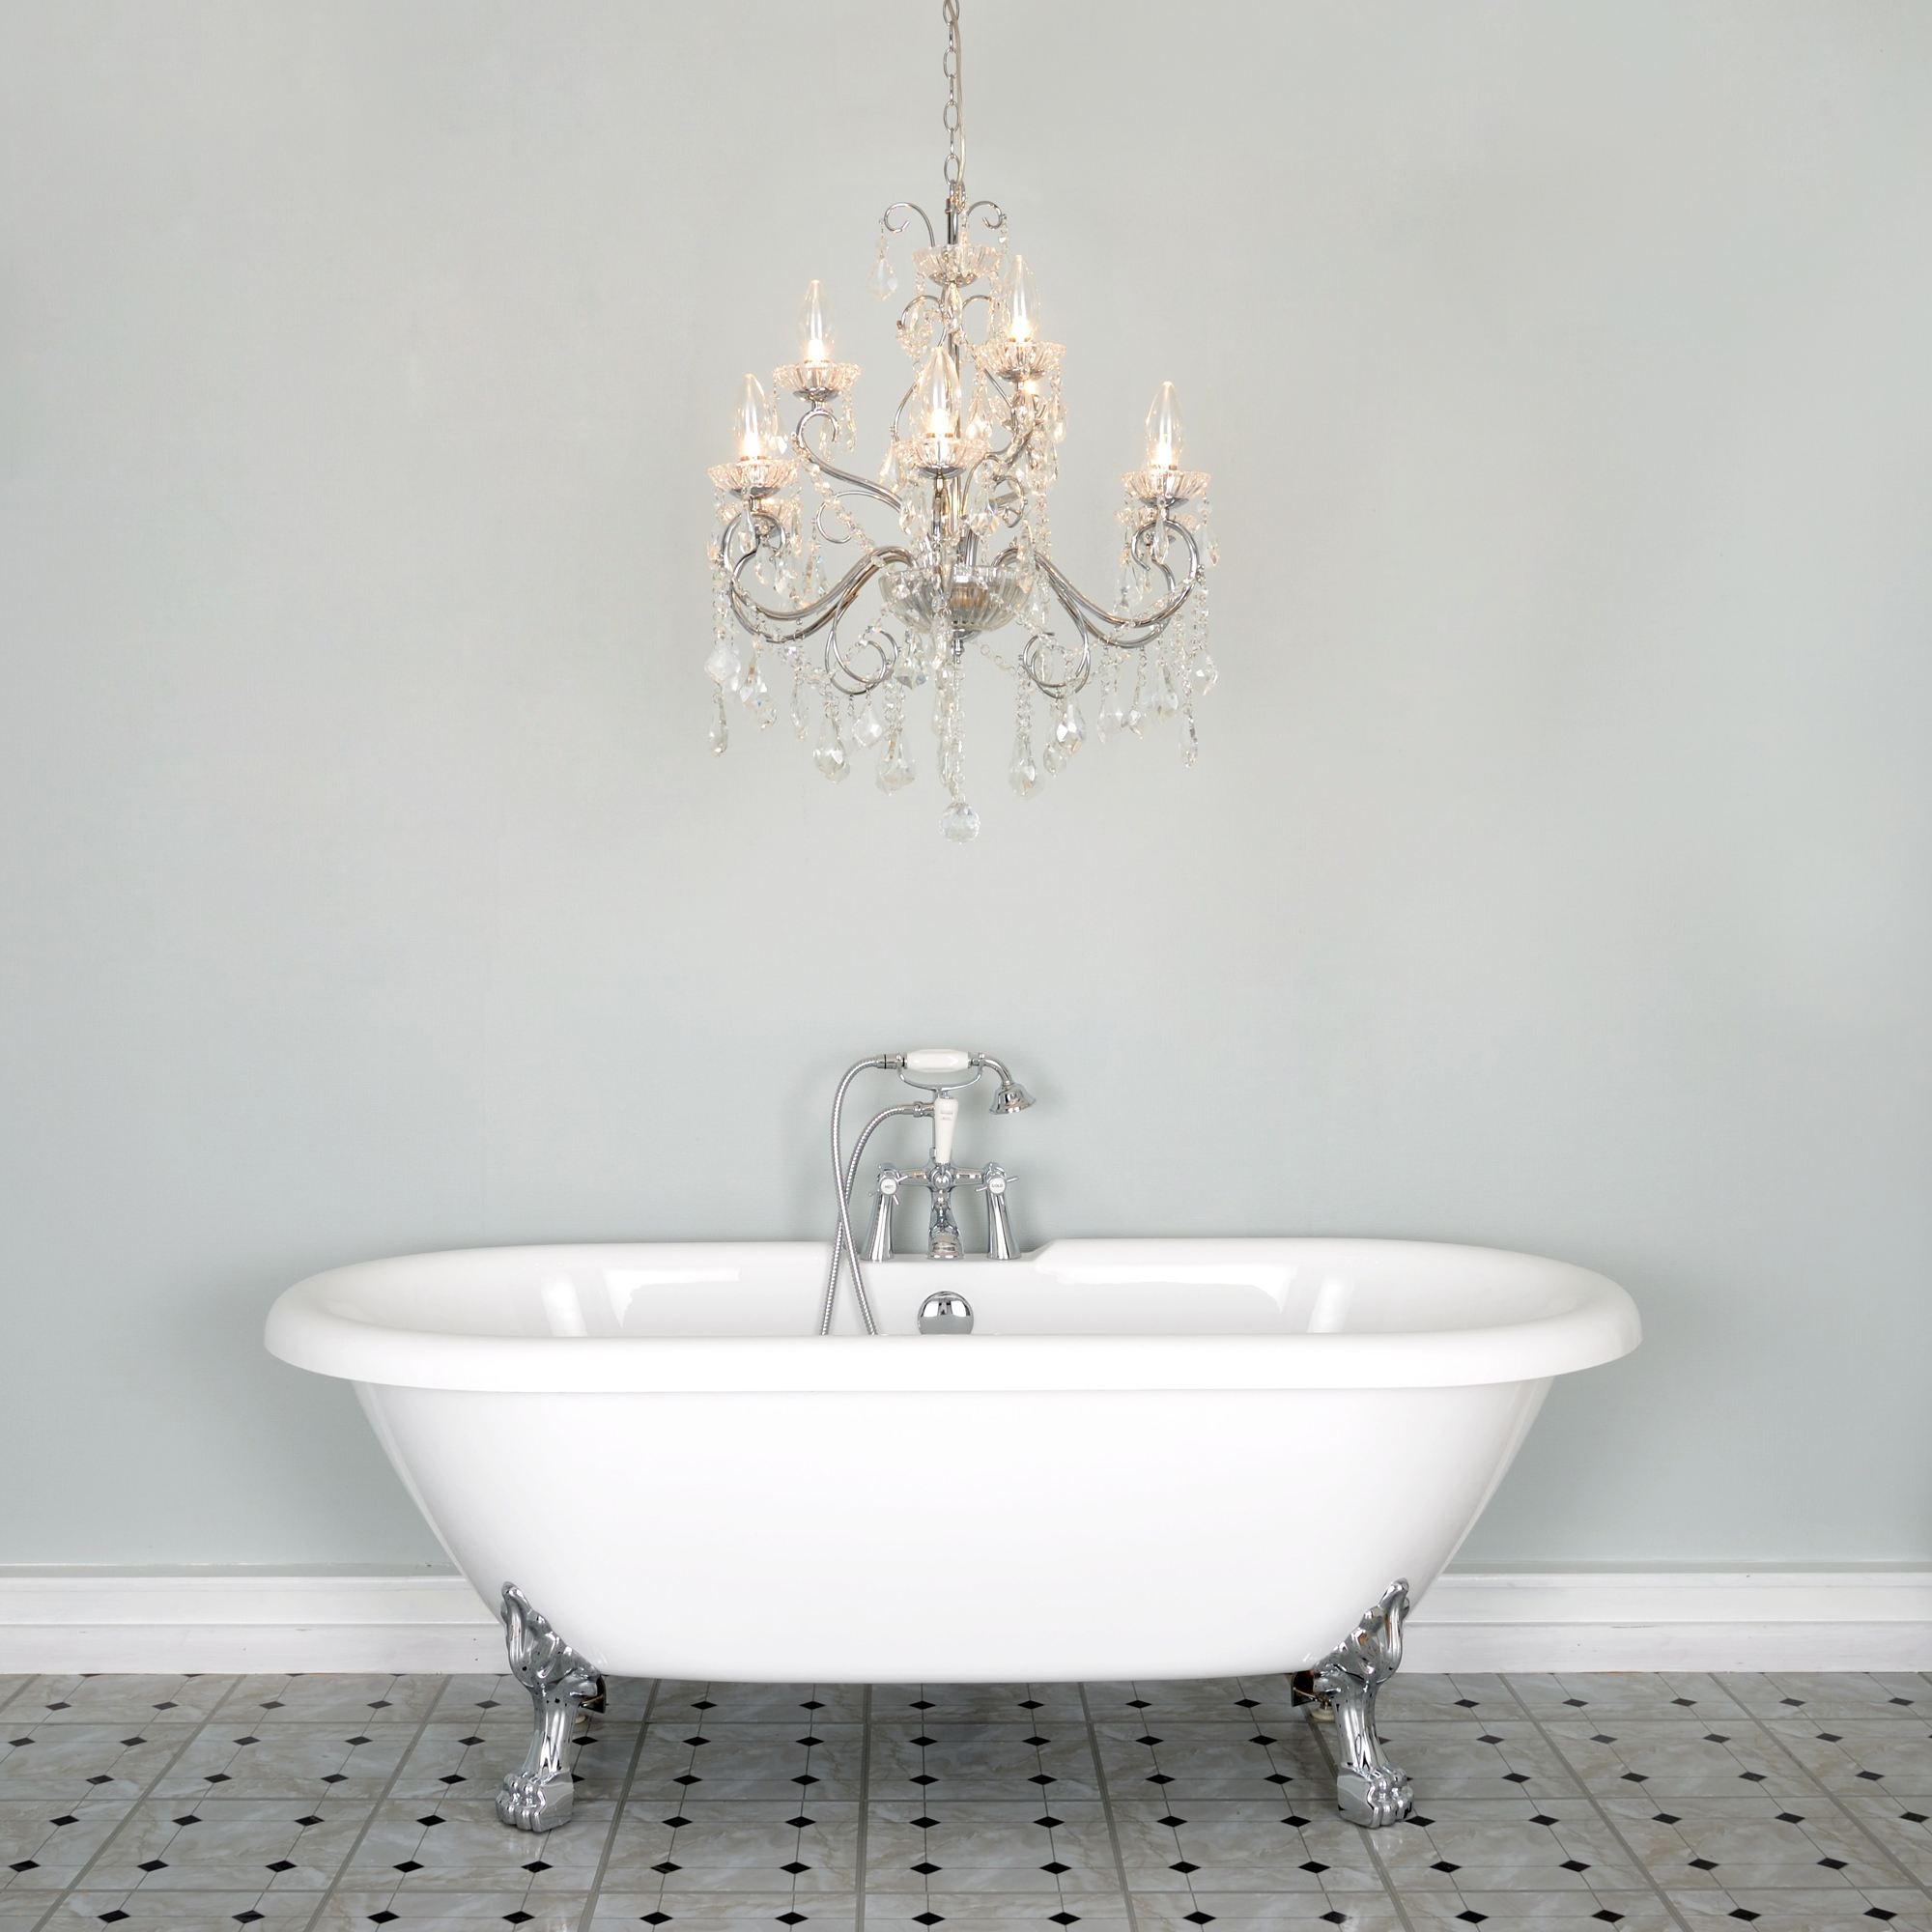 Chandelier For Bathroom Home Design Ideas For Mini Chandelier Bathroom Lighting (View 22 of 25)